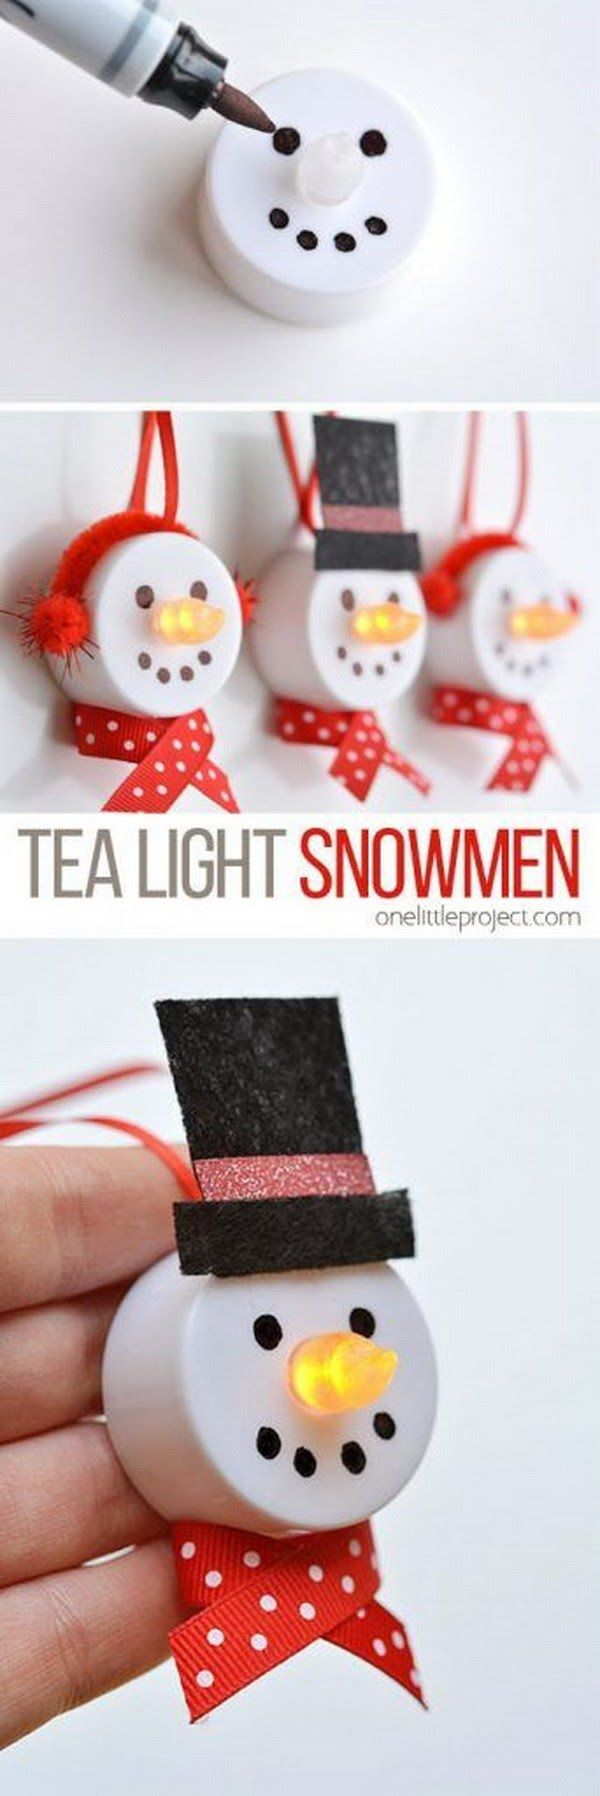 35 Easy And Fun Diy Christmas Crafts For You And Your Kids To Have Fun For Creative Juice Christmas Crafts Diy Christmas Crafts Tea Light Snowman